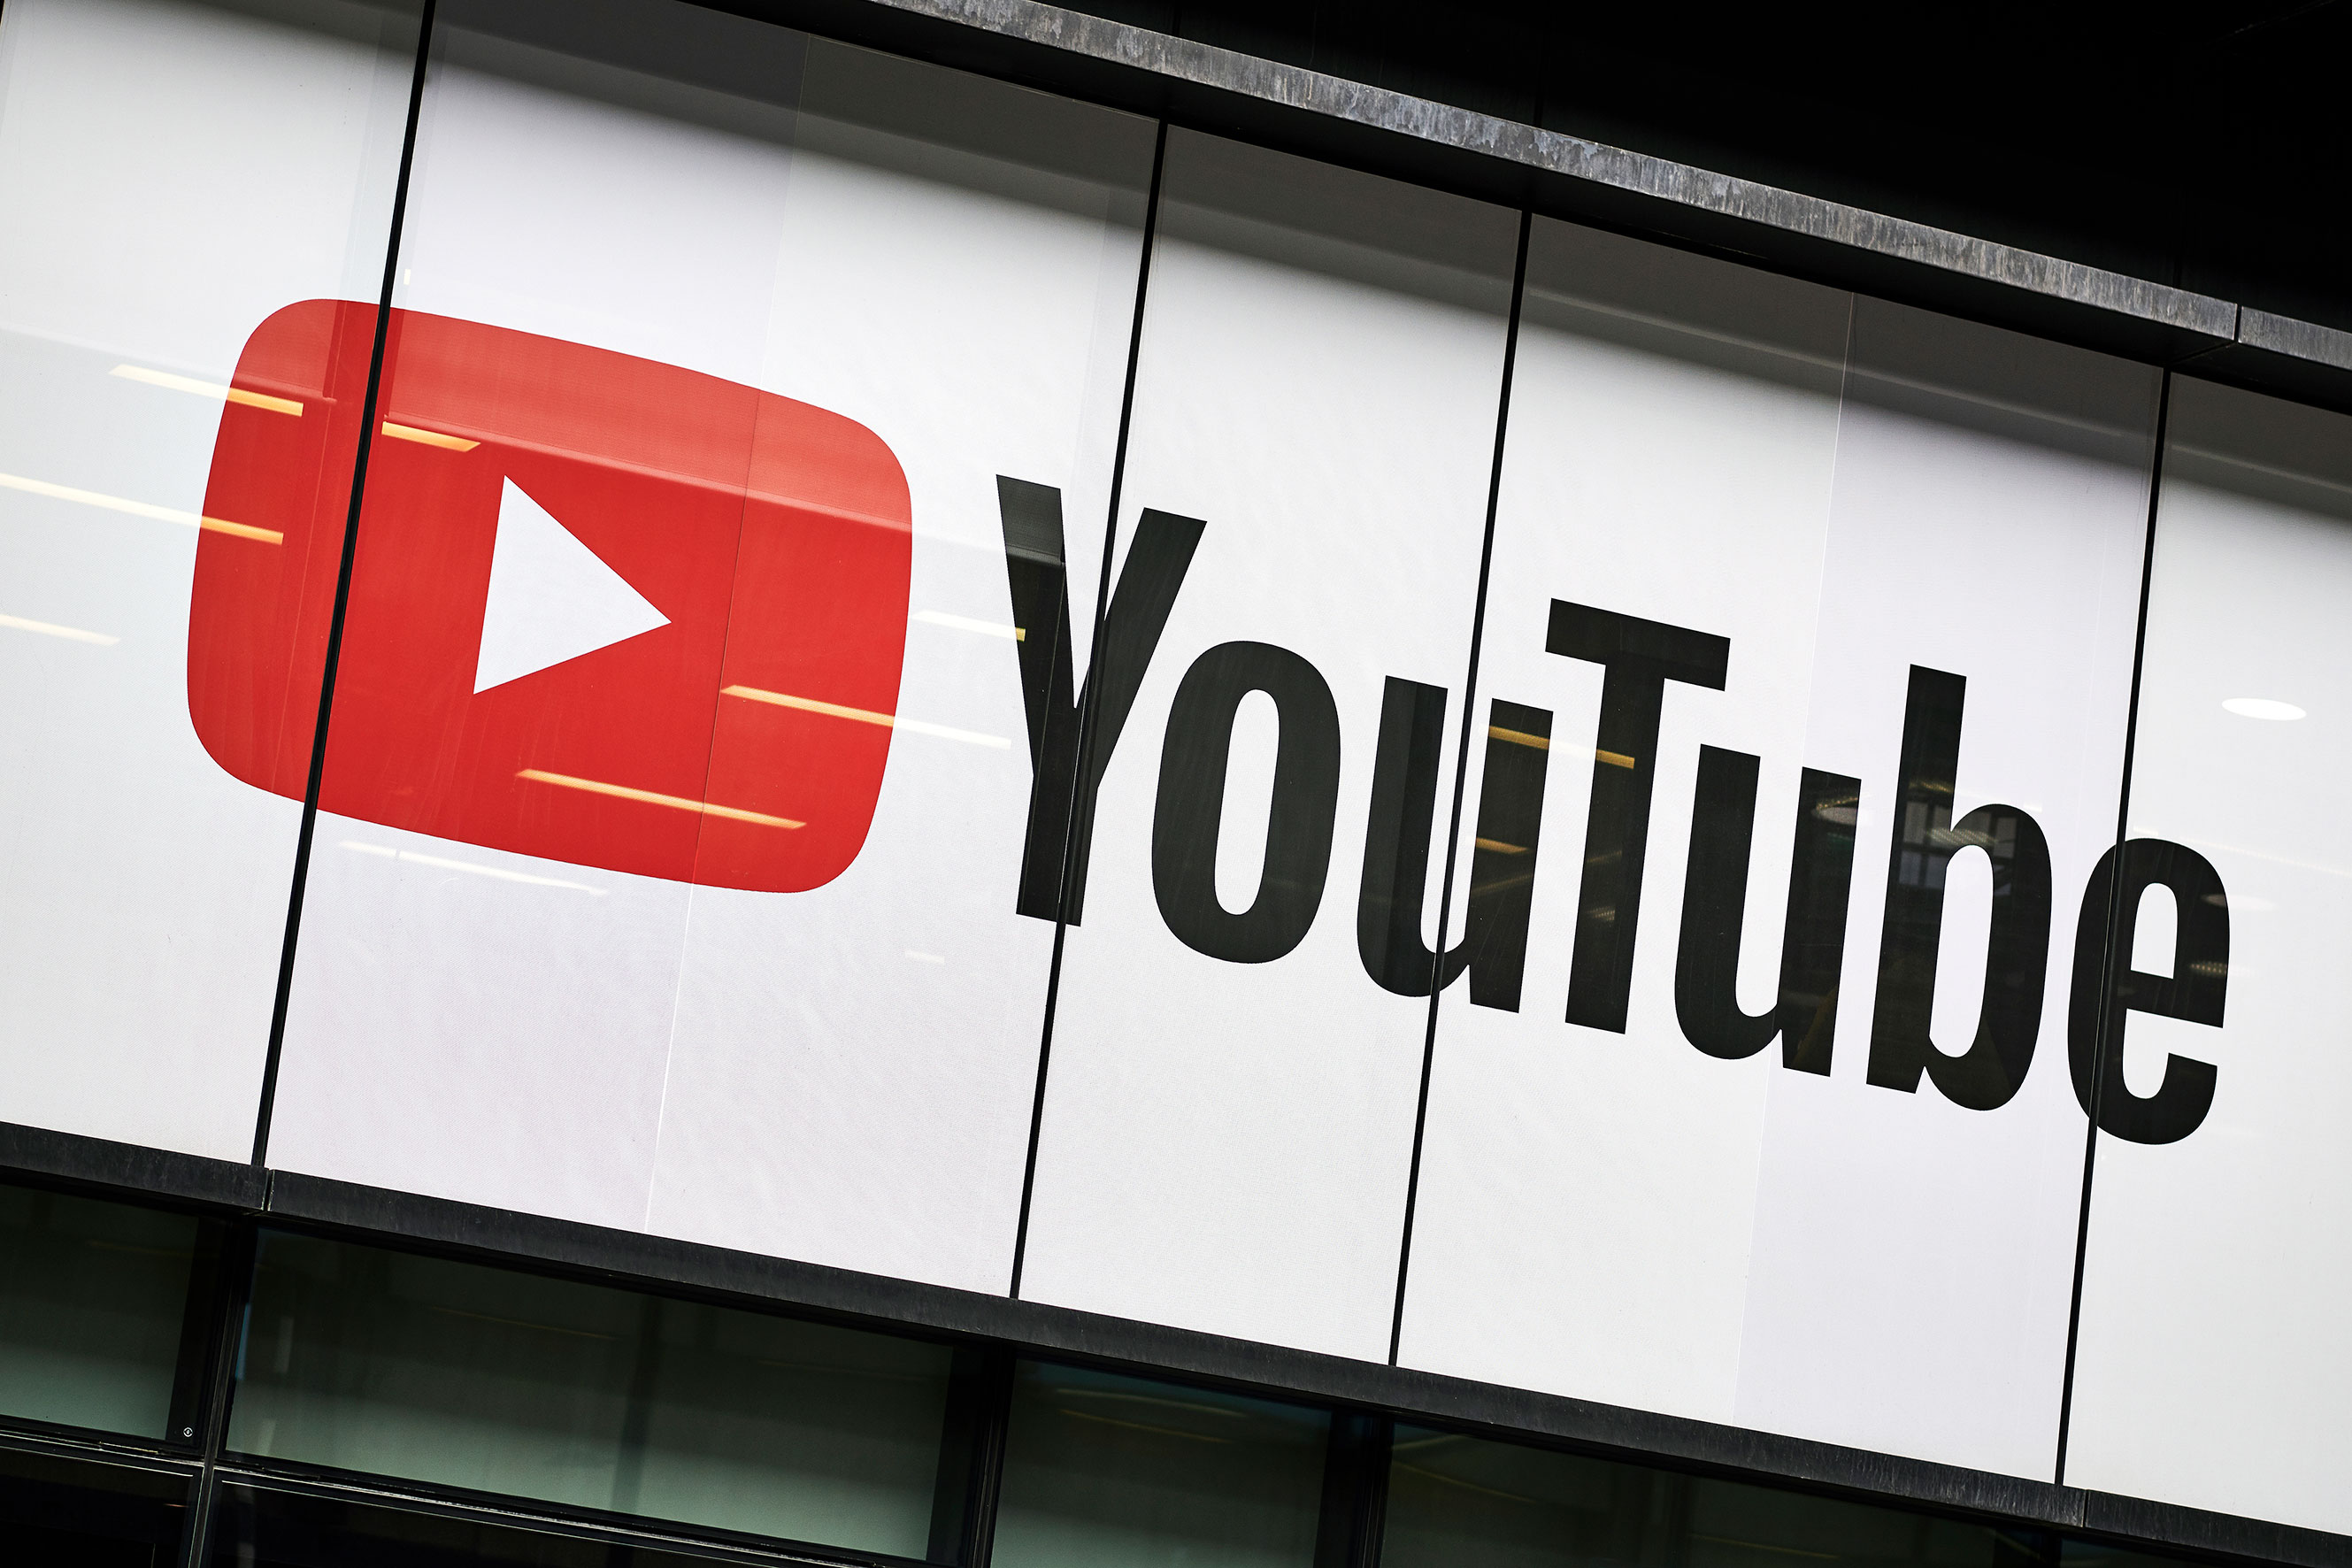 YouTube will experiment with audio ads during background playback